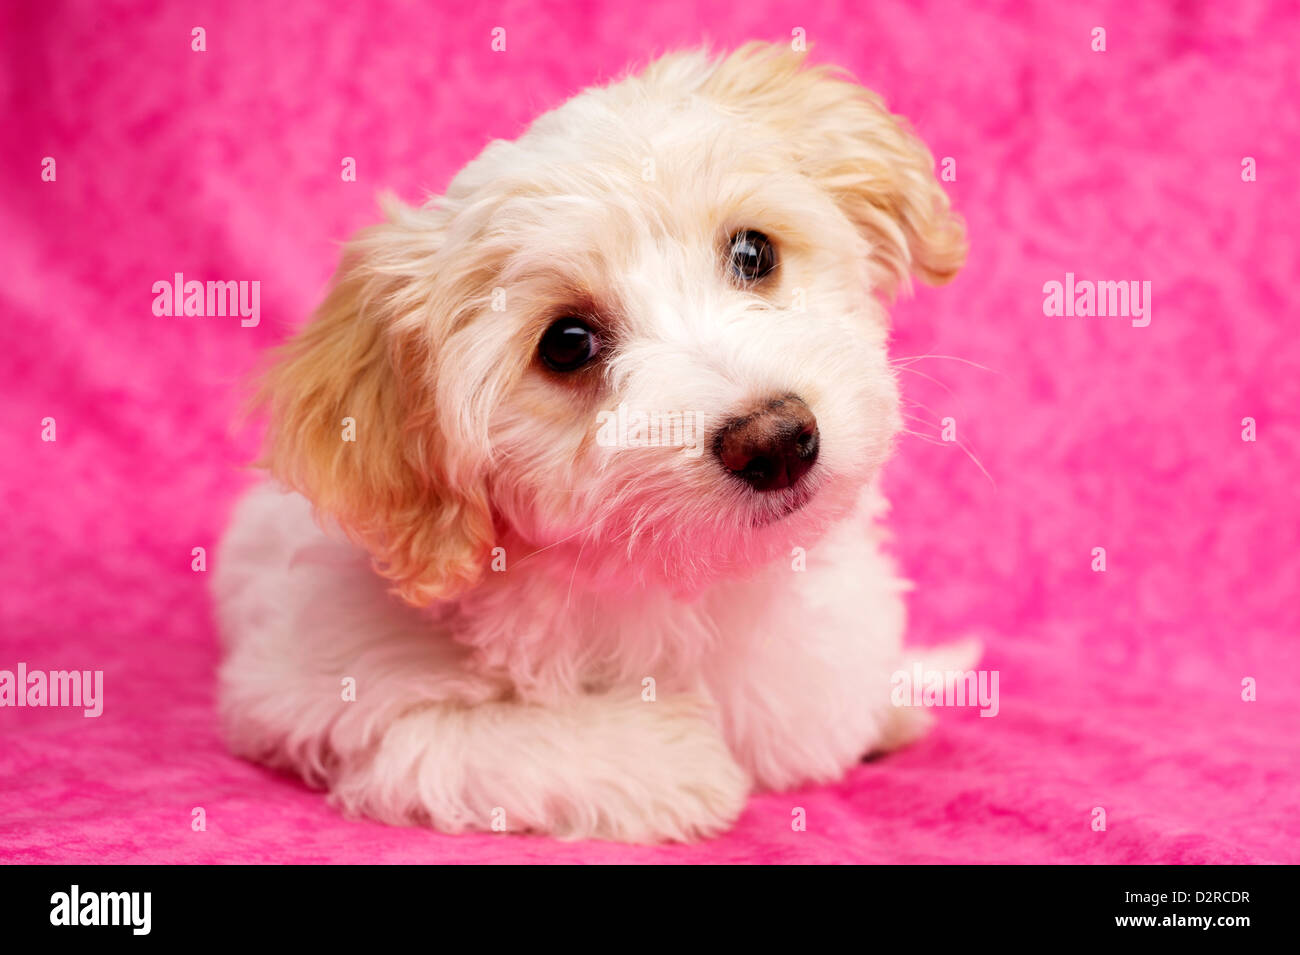 Cute Fluffy Puppies Stock Photos & Cute Fluffy Puppies Stock